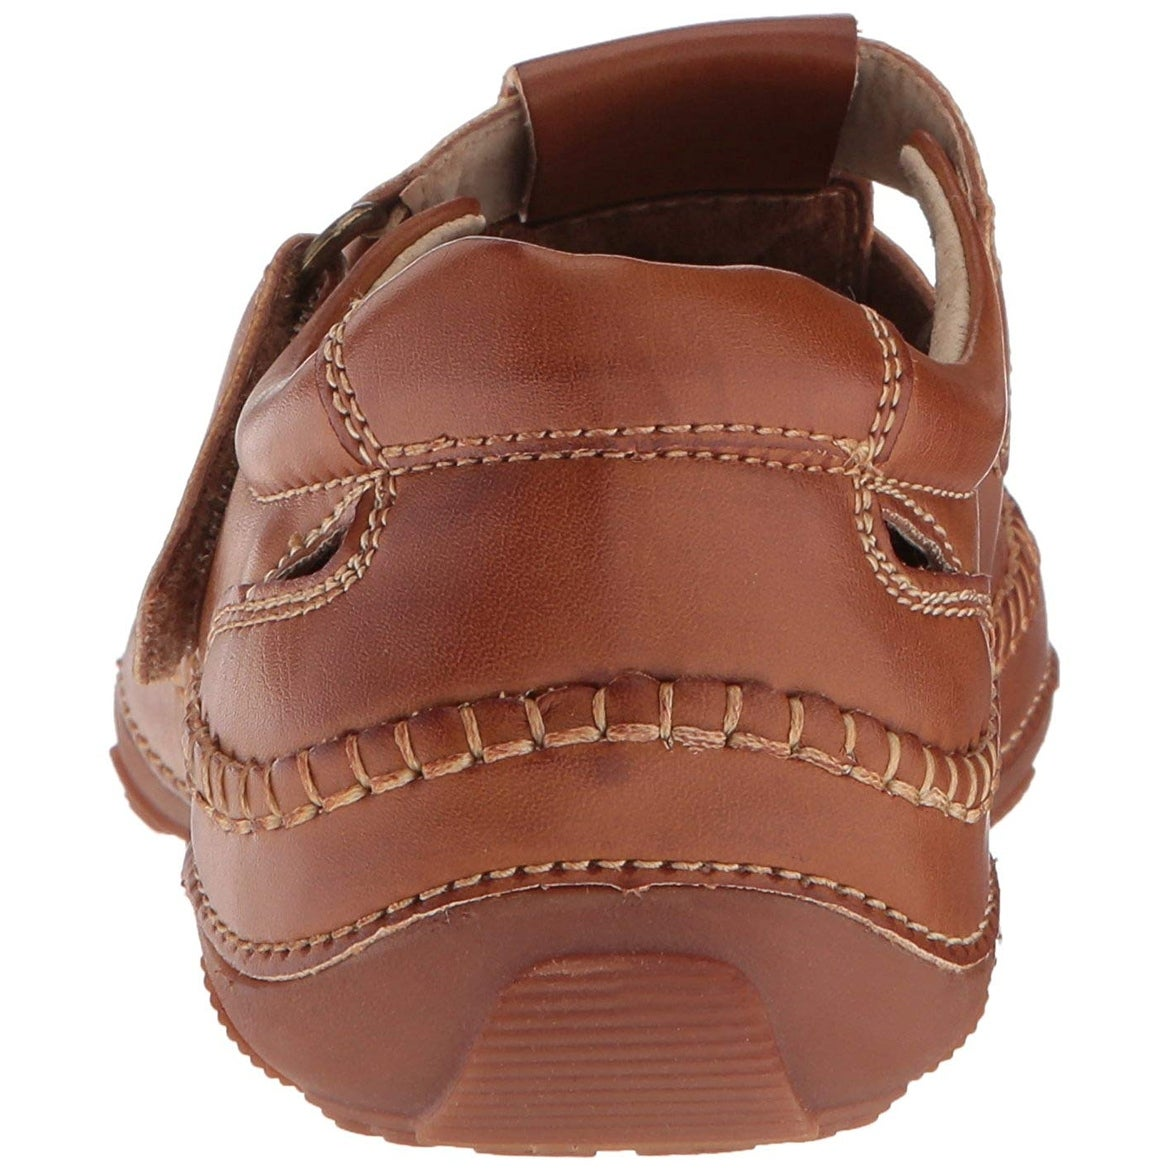 a087e35b7af Shop GBX Mens Sentaur Closed Toe Fisherman Sandals - Free Shipping On  Orders Over  45 - Overstock - 22810598